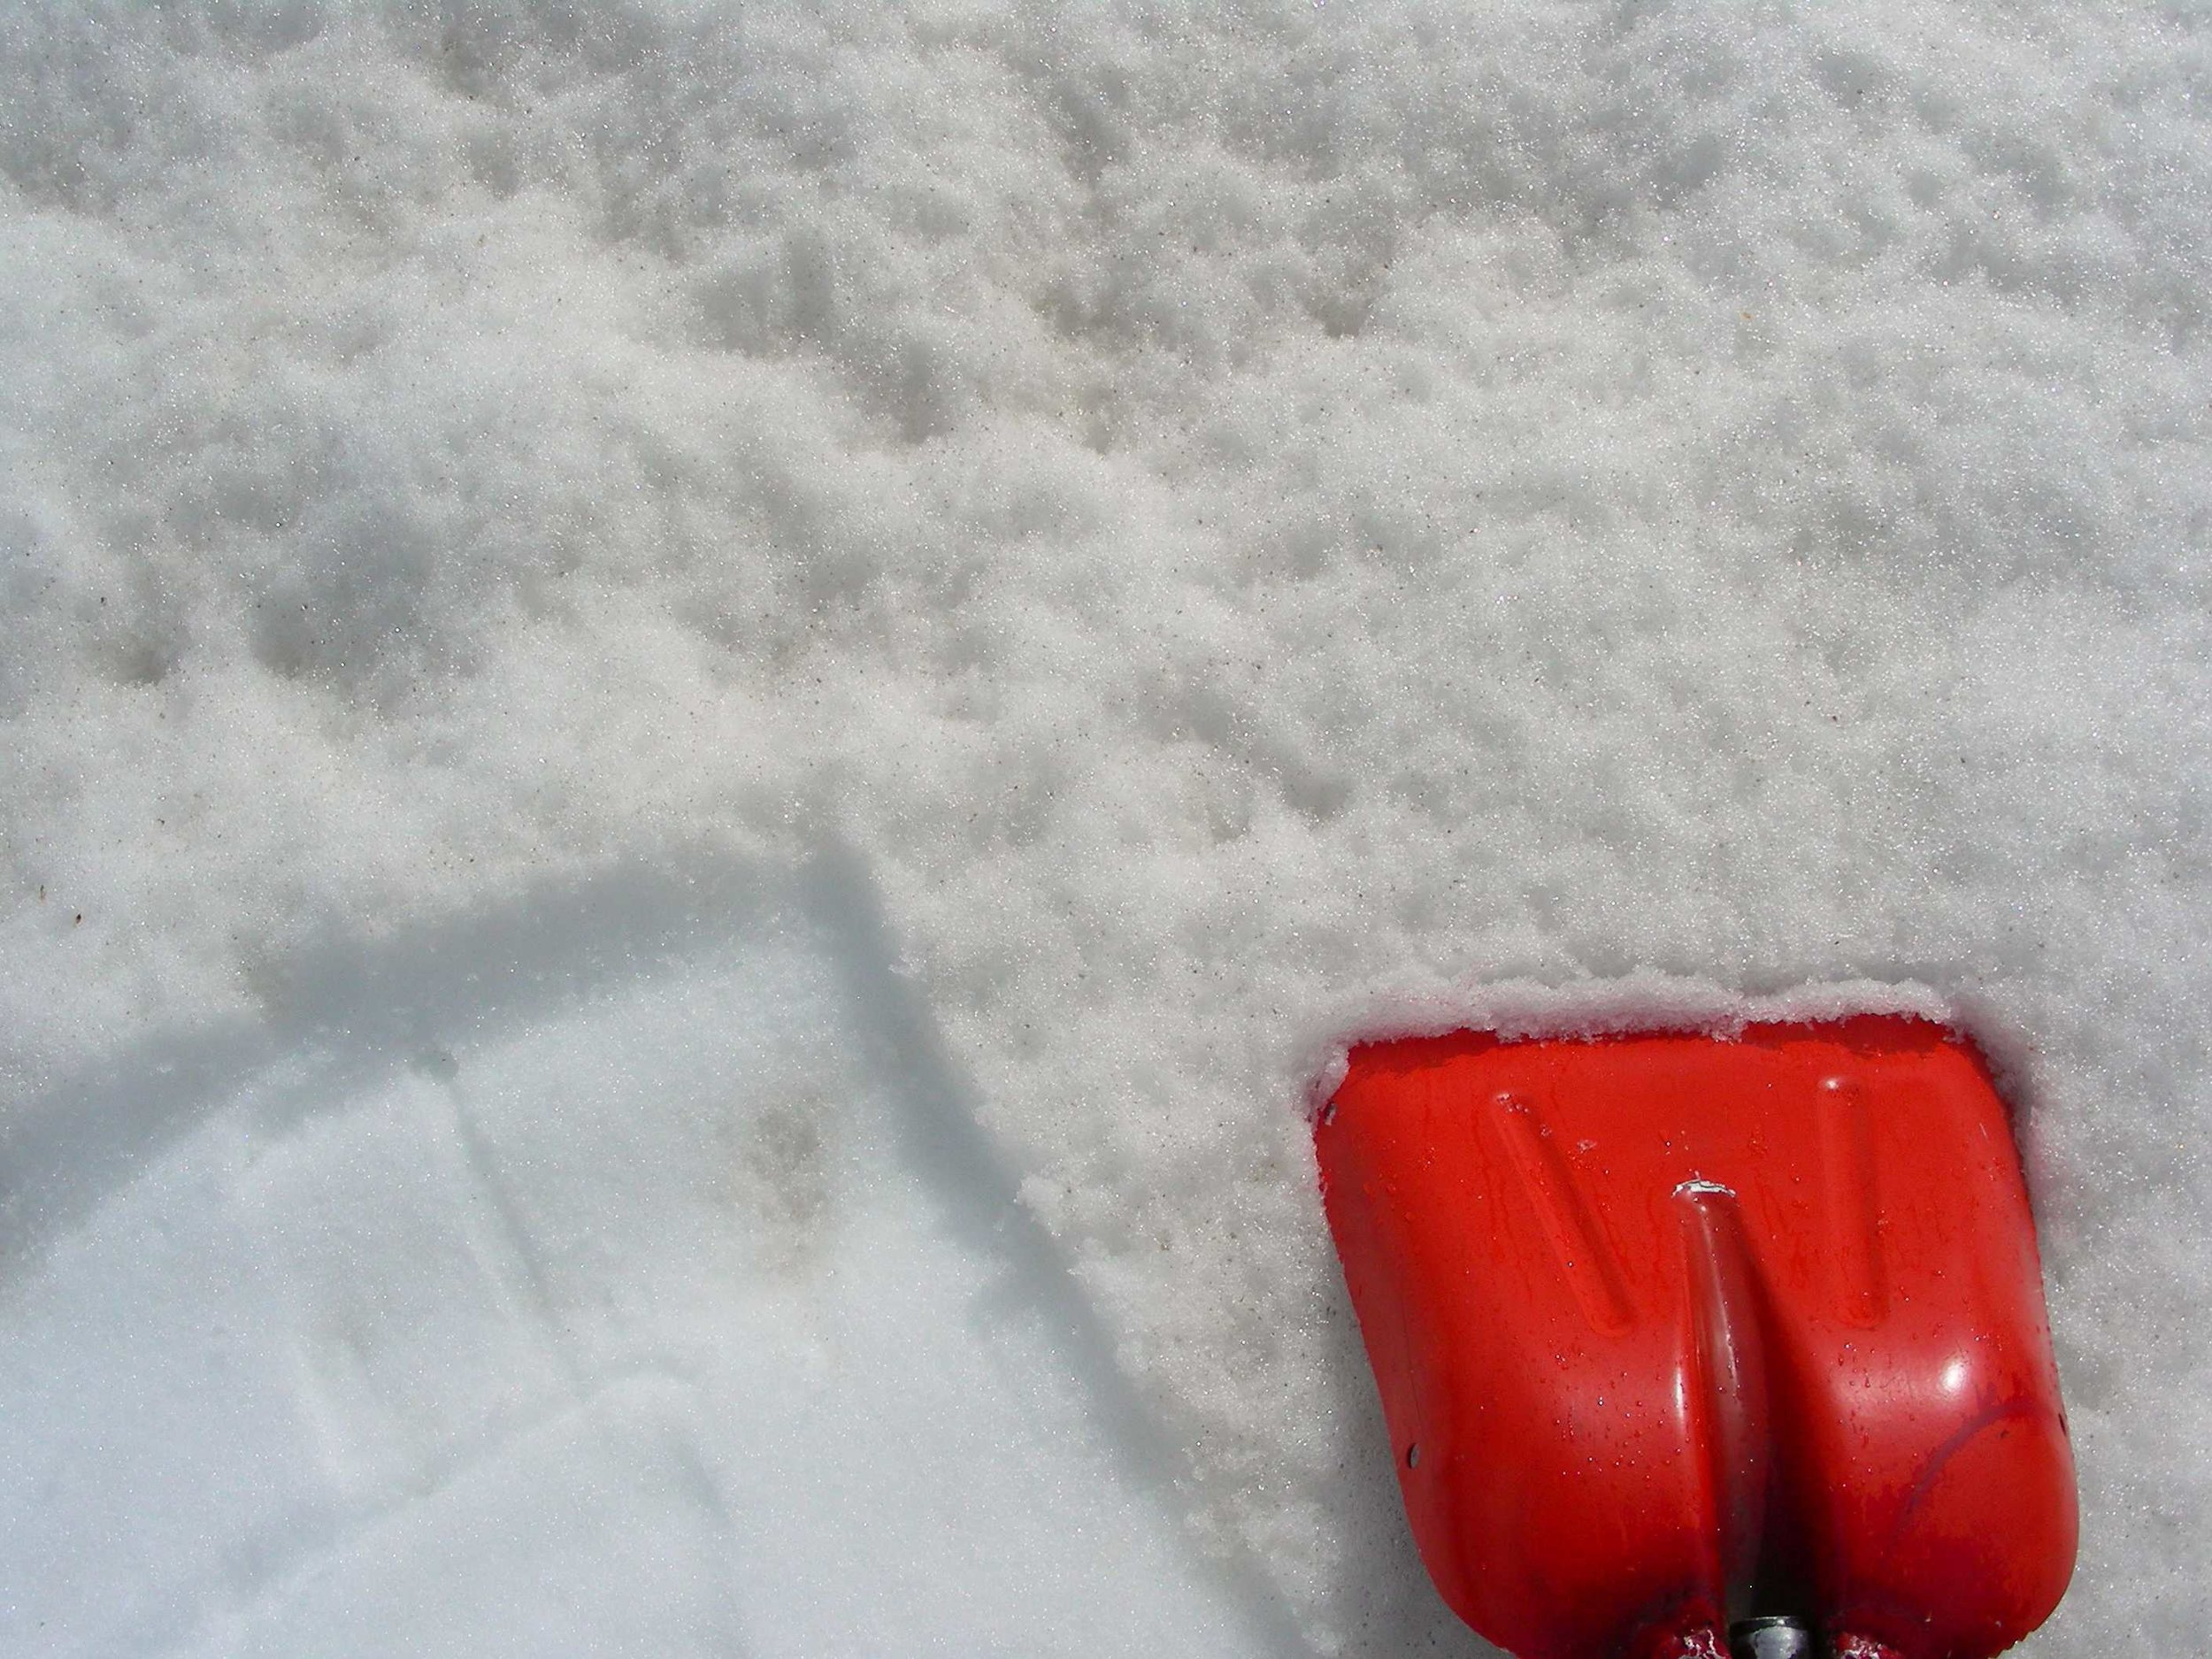 Picture of snow surface at Grande Mesa CODOS sample site on May 16.  Clean snow, located 2 cm below snow surface, is shown in the lower left corner.  The dusty and rough surface is seen in the rest of the photo.